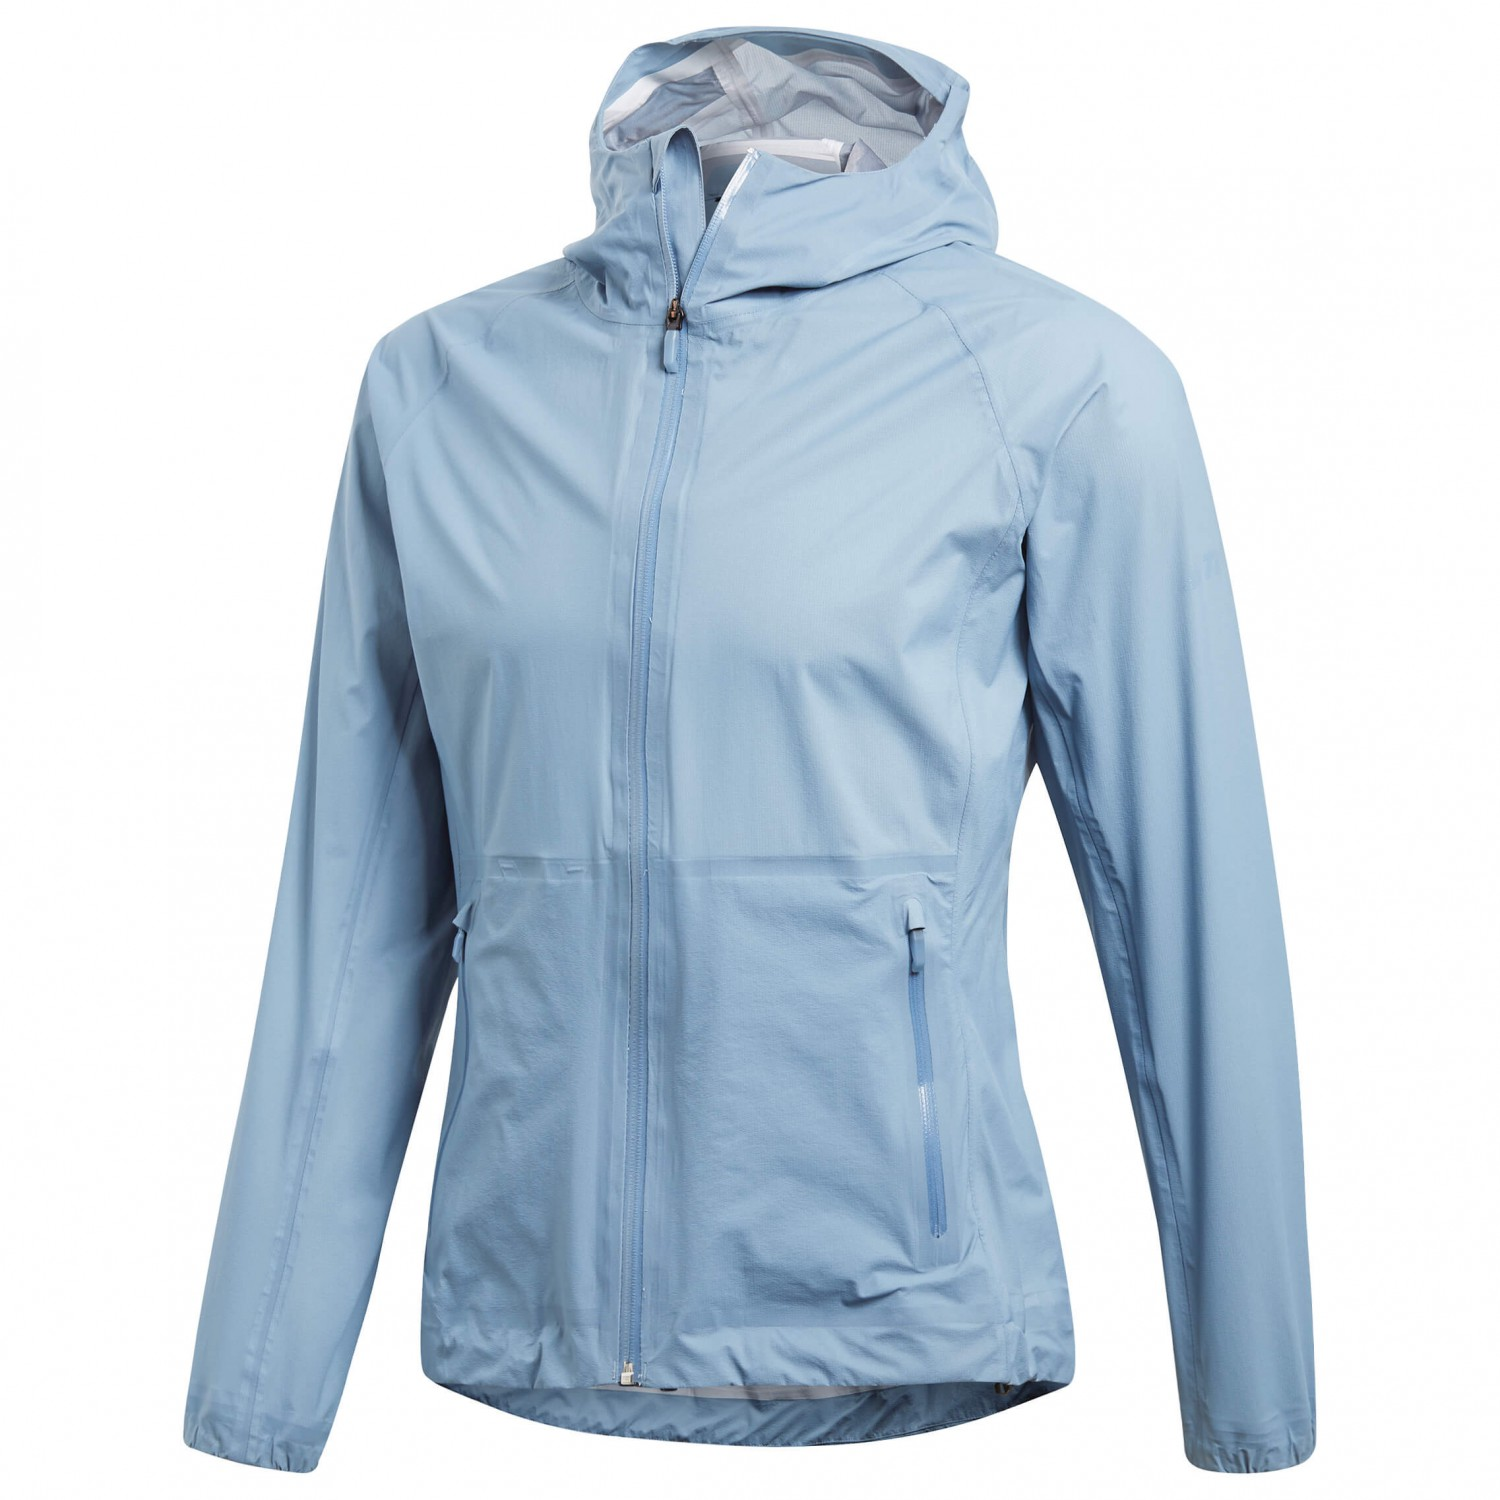 79a3a2731 Adidas Agravic 3 Layer Jacket - Waterproof Jacket Men's | Free UK ...